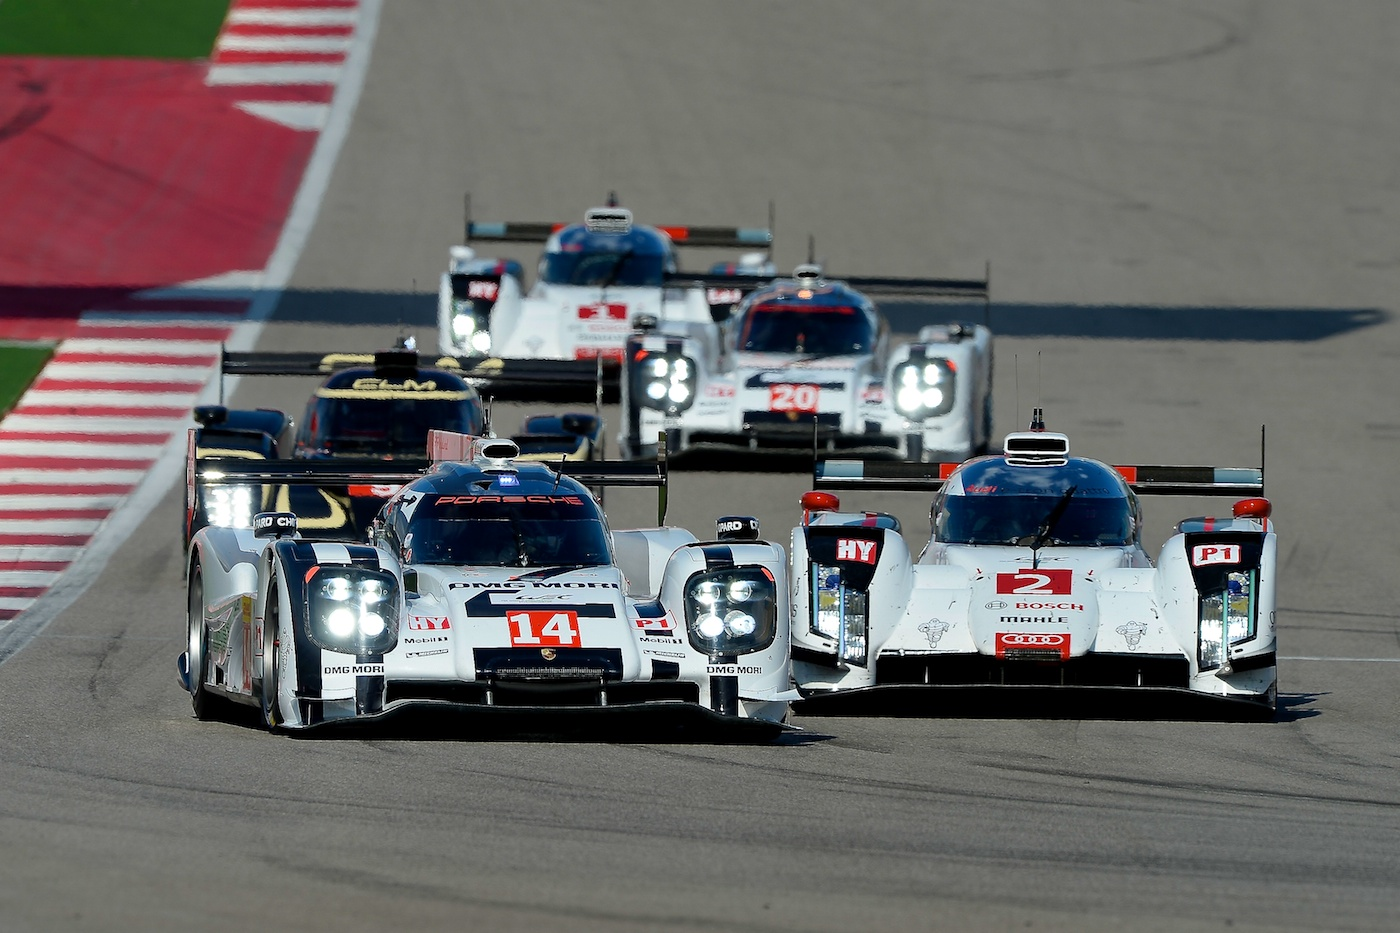 Germany joins the FIA WEC